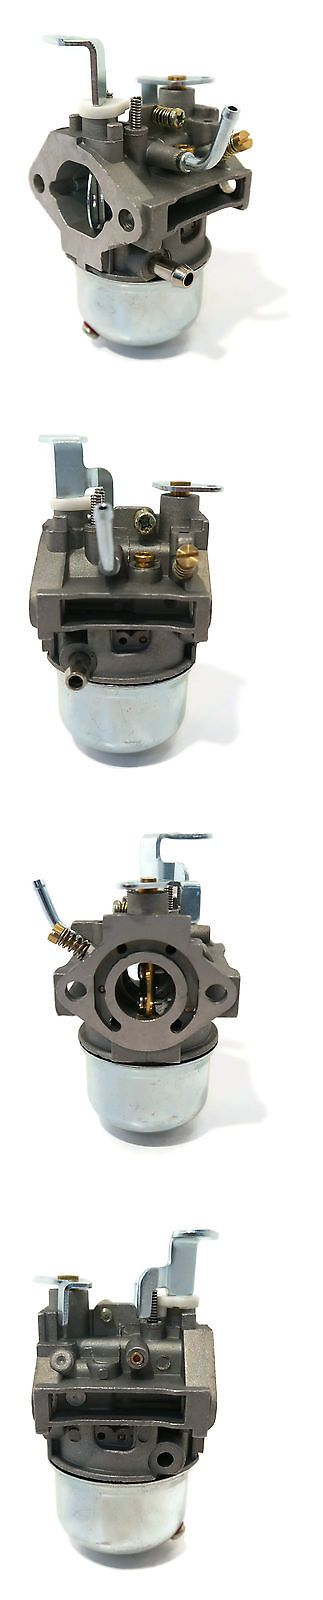 Snow Blowers 42230: Carburetor Carb Carby For Toro Snowblowers W Suzuki Engines Mikuni 13200-906B0 -> BUY IT NOW ONLY: $31.99 on eBay!